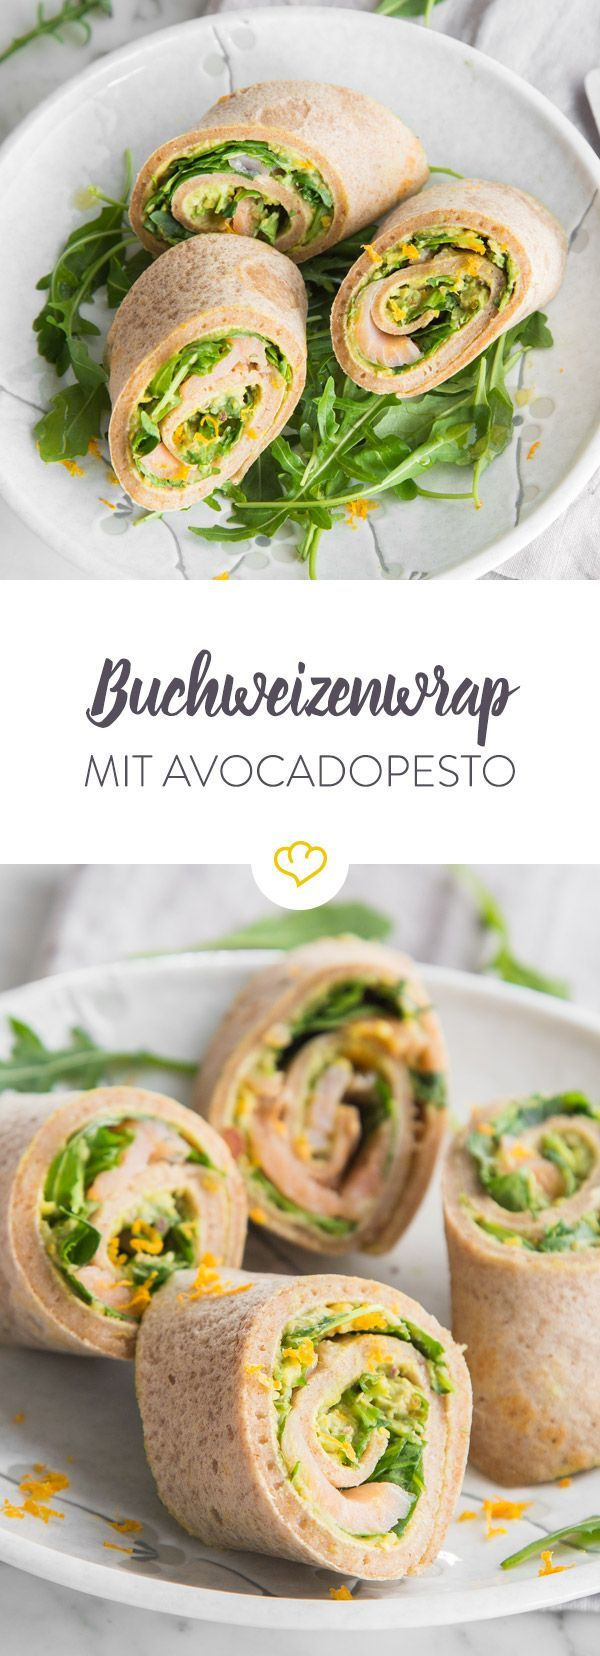 Clean Eating: Pfannkuchen mit Avocadopesto